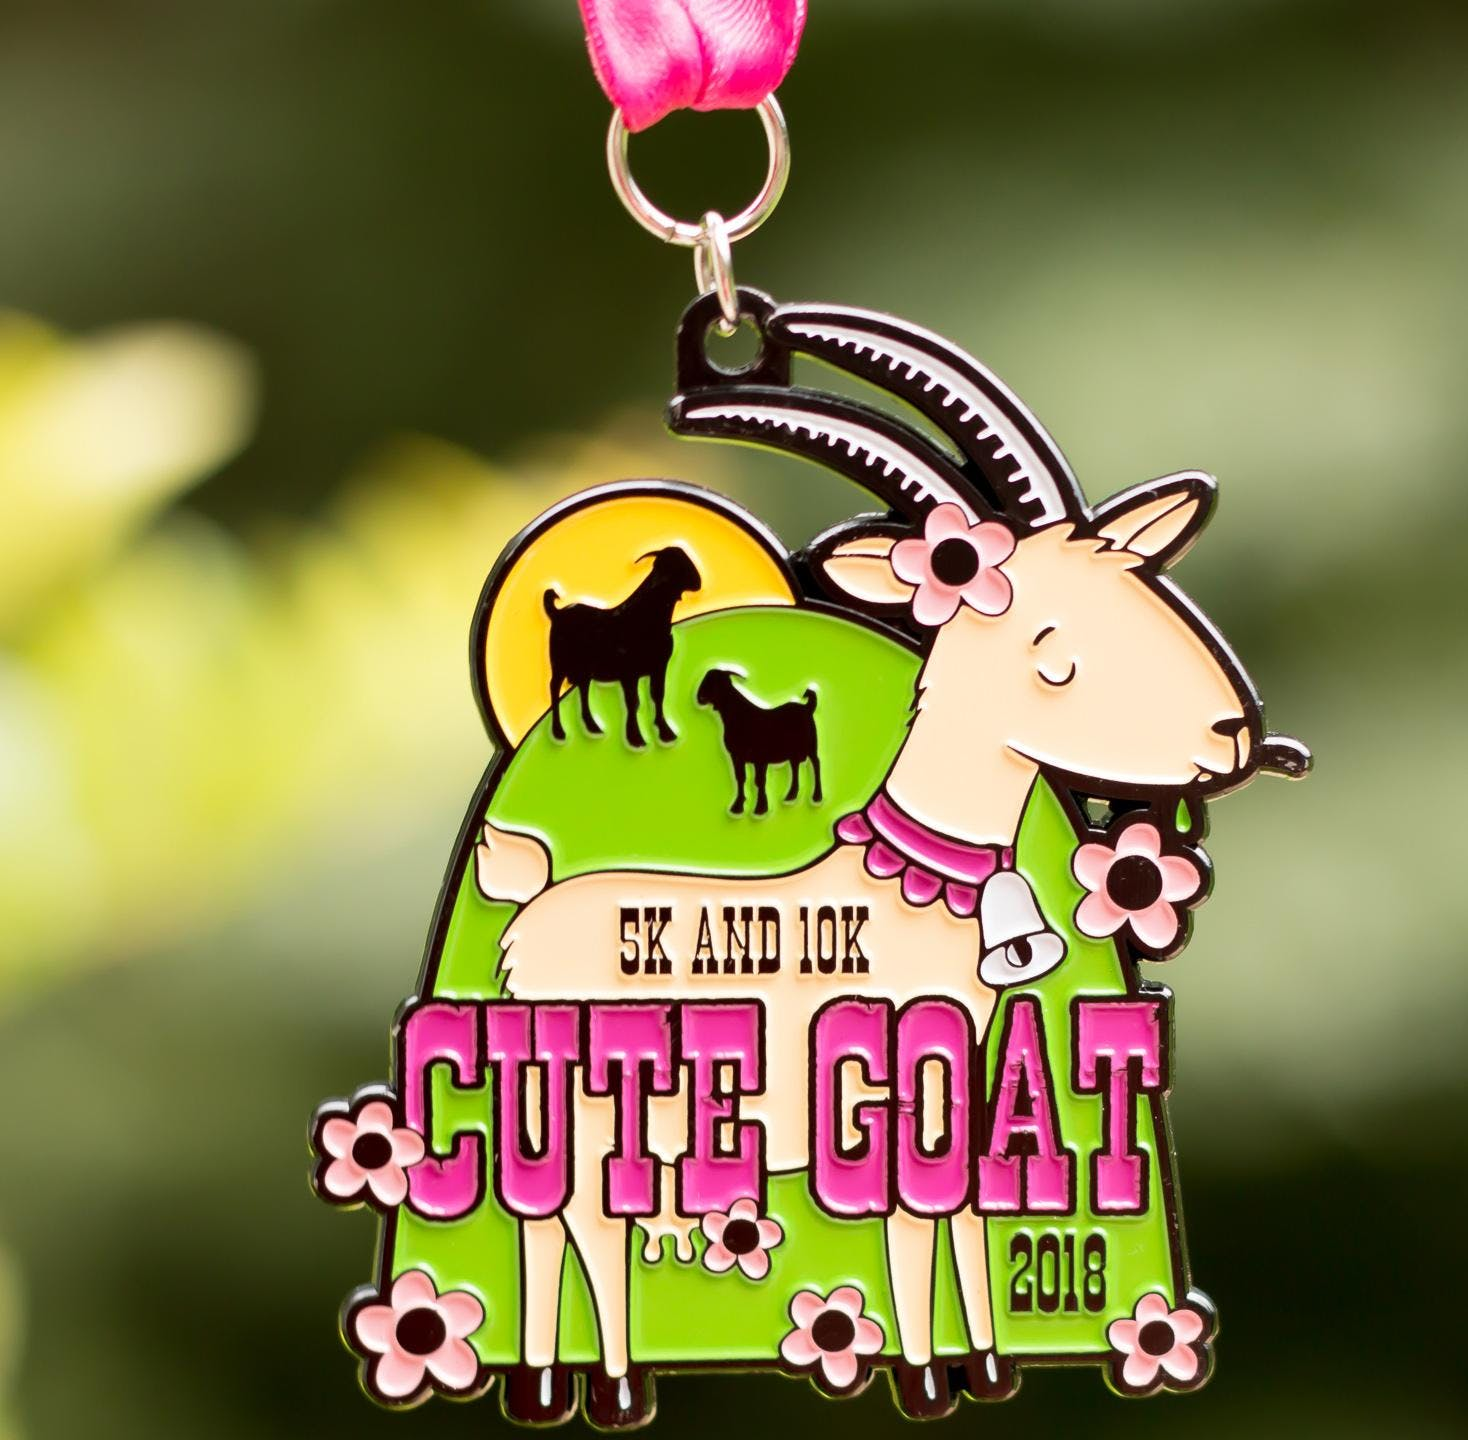 Now Only $10! Cute Goat 5K & 10K - Miami